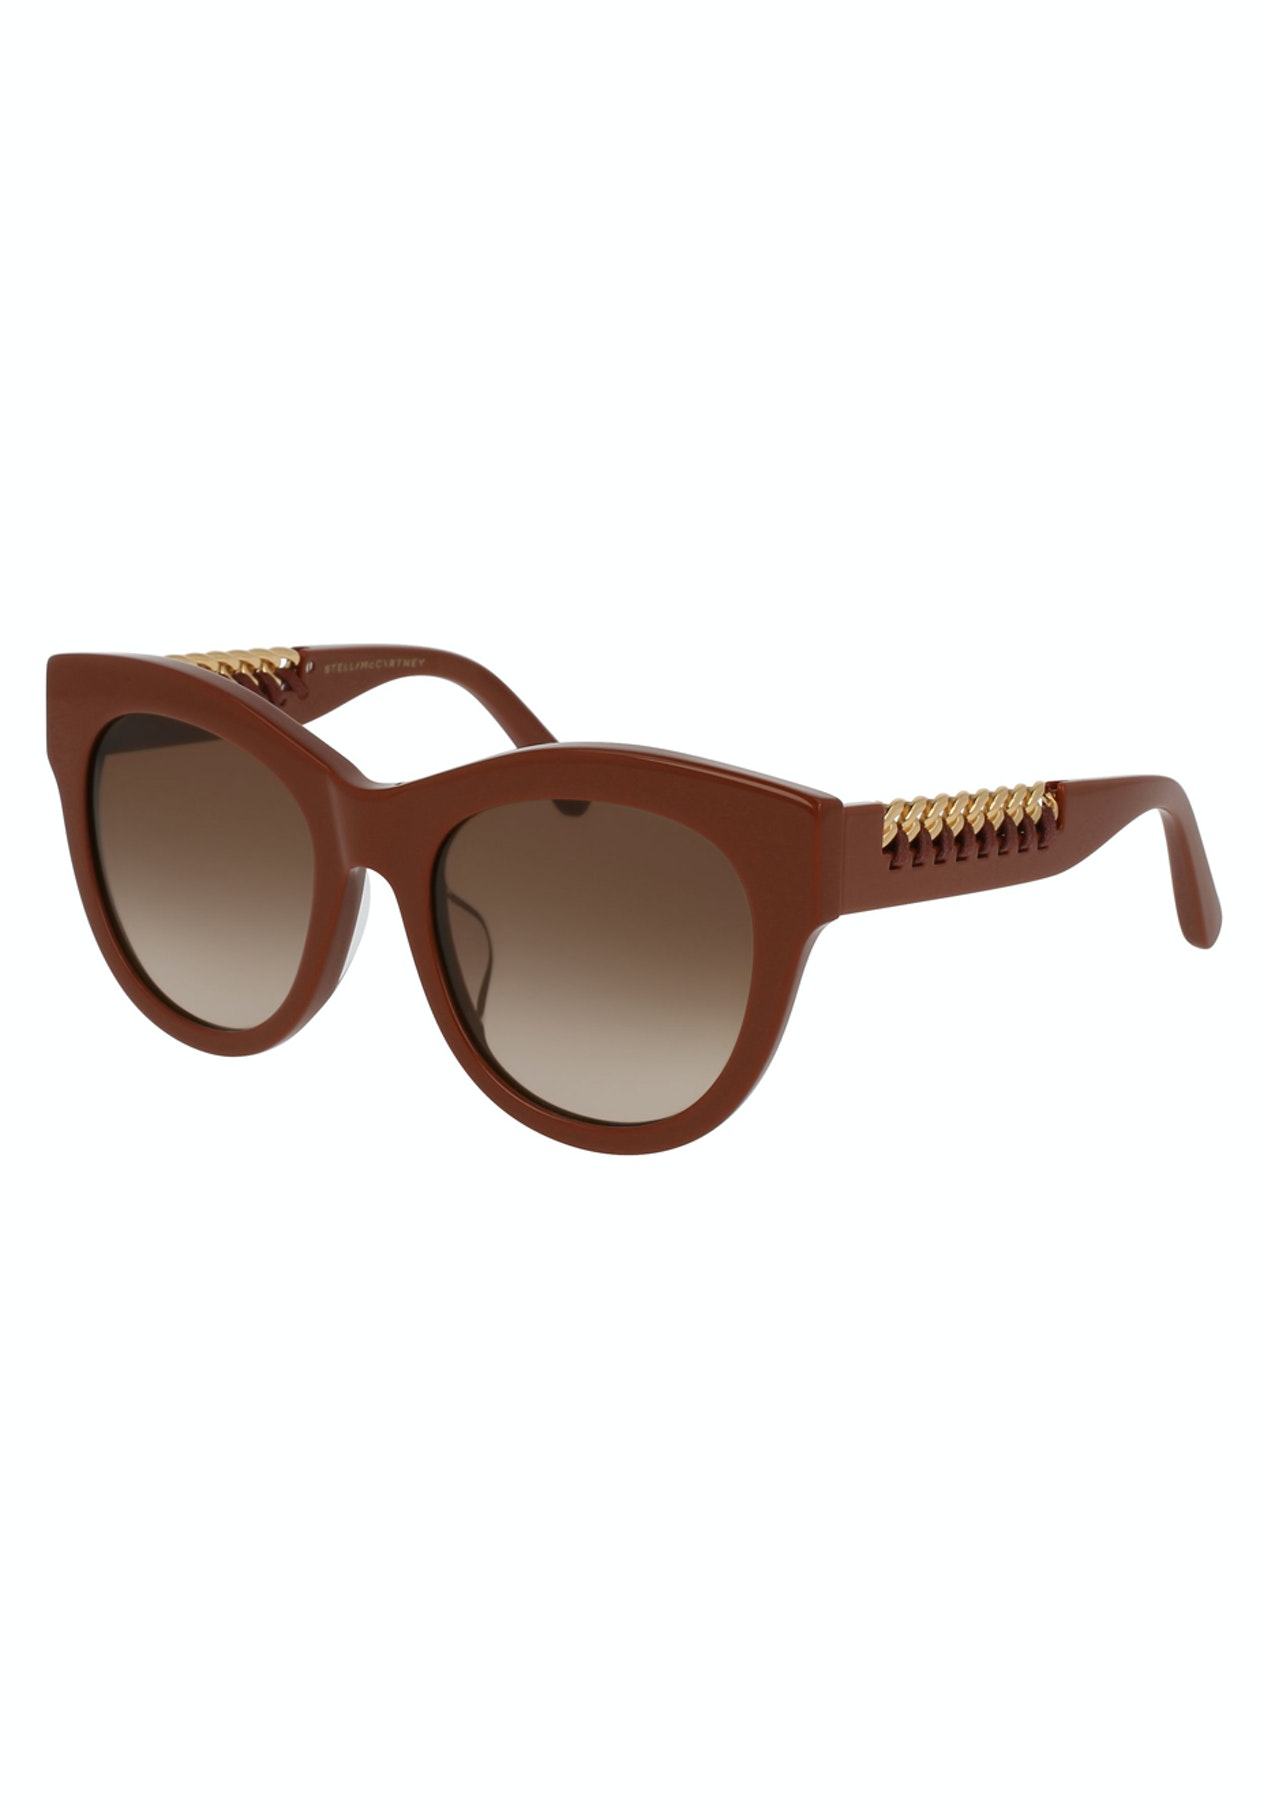 9fd58711656 Stella McCartney - SC0064SA005 - Asian Fit - Red-Gold - Stella McCartney  Sunglasses up to 50% Off - Onceit